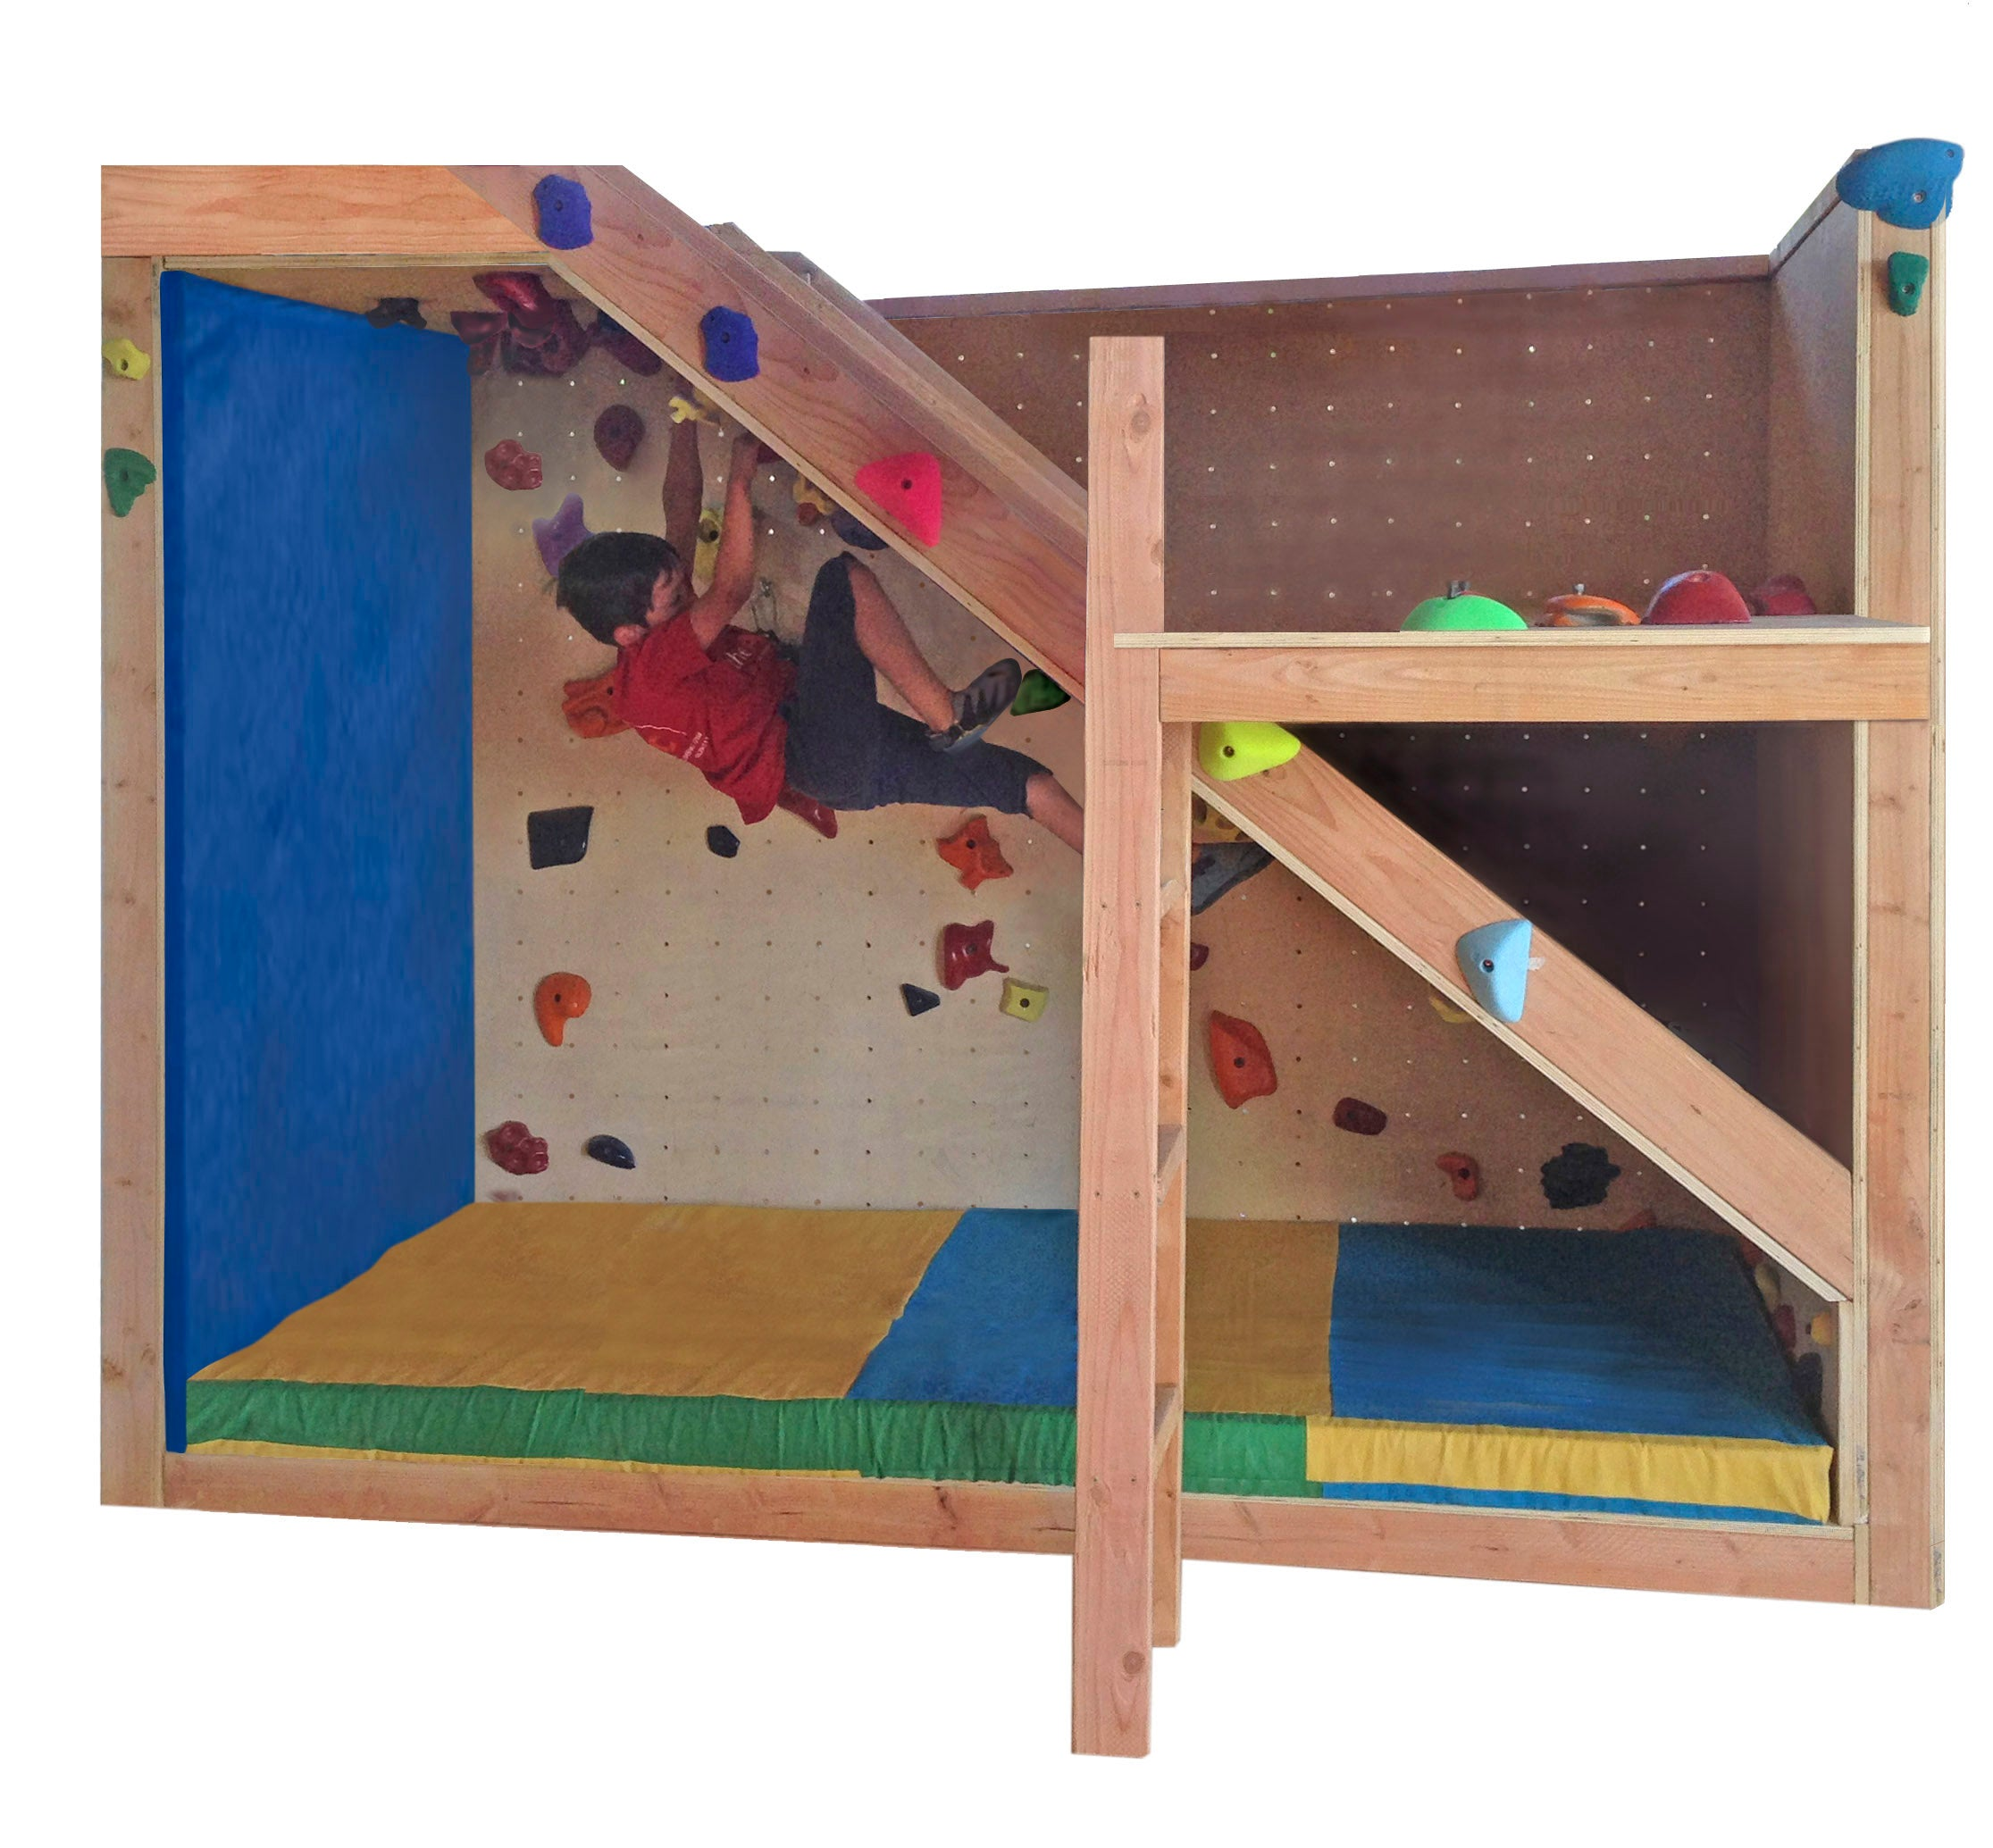 Kids Indoor Bedroom Rock Climbing Wall - Rock Climbing Wall - Climbing Training - Bouldering wall